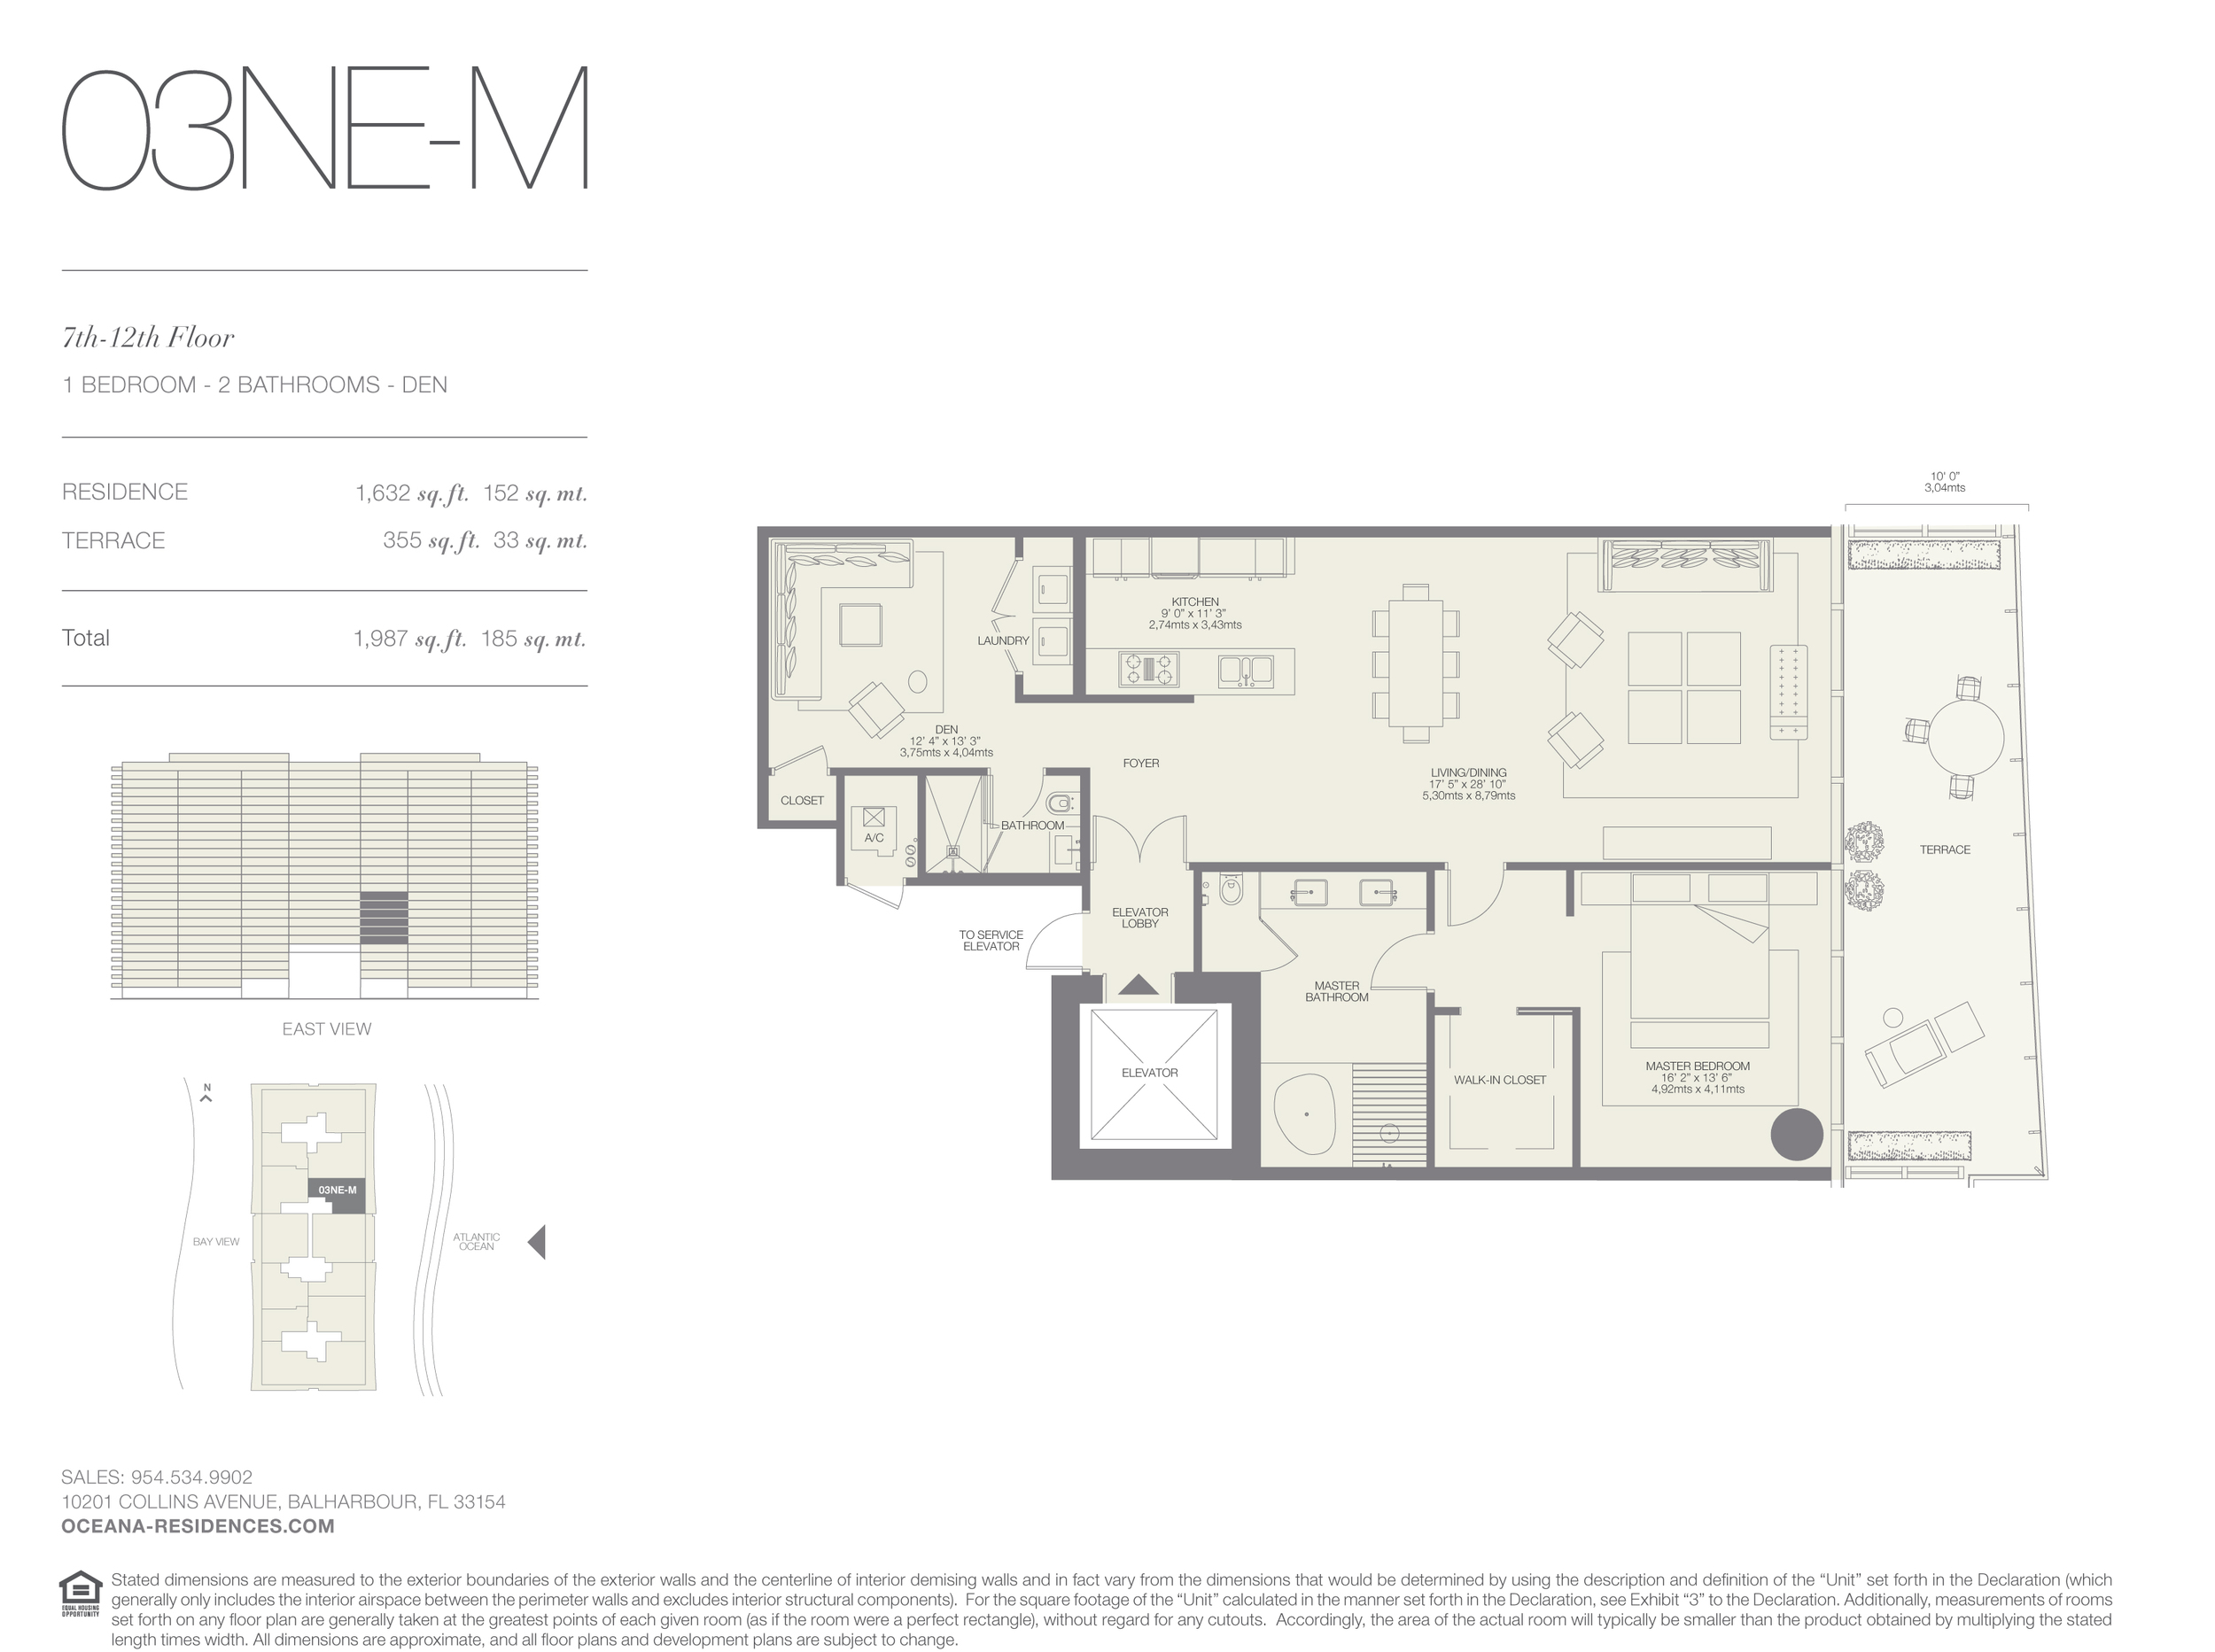 03 NE-M  1 Bed - 2 Bath plus Den